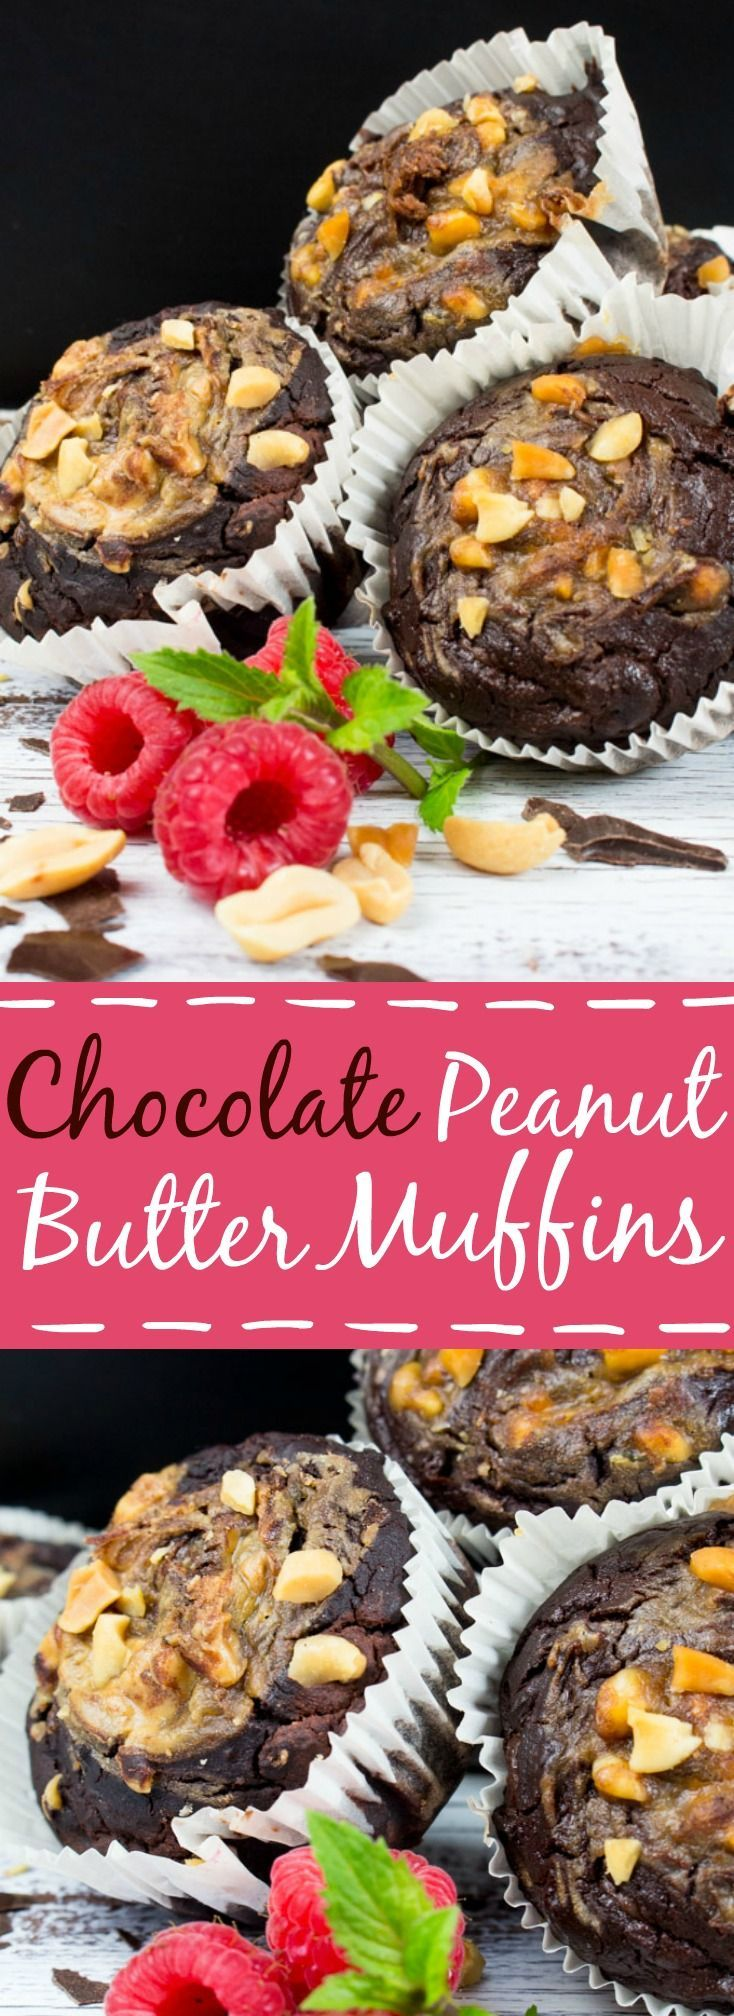 These peanut butter chocolate muffins are the perfect treat - they're vegan, moist, made with whole wheat flour and zucchini, and super delicious!